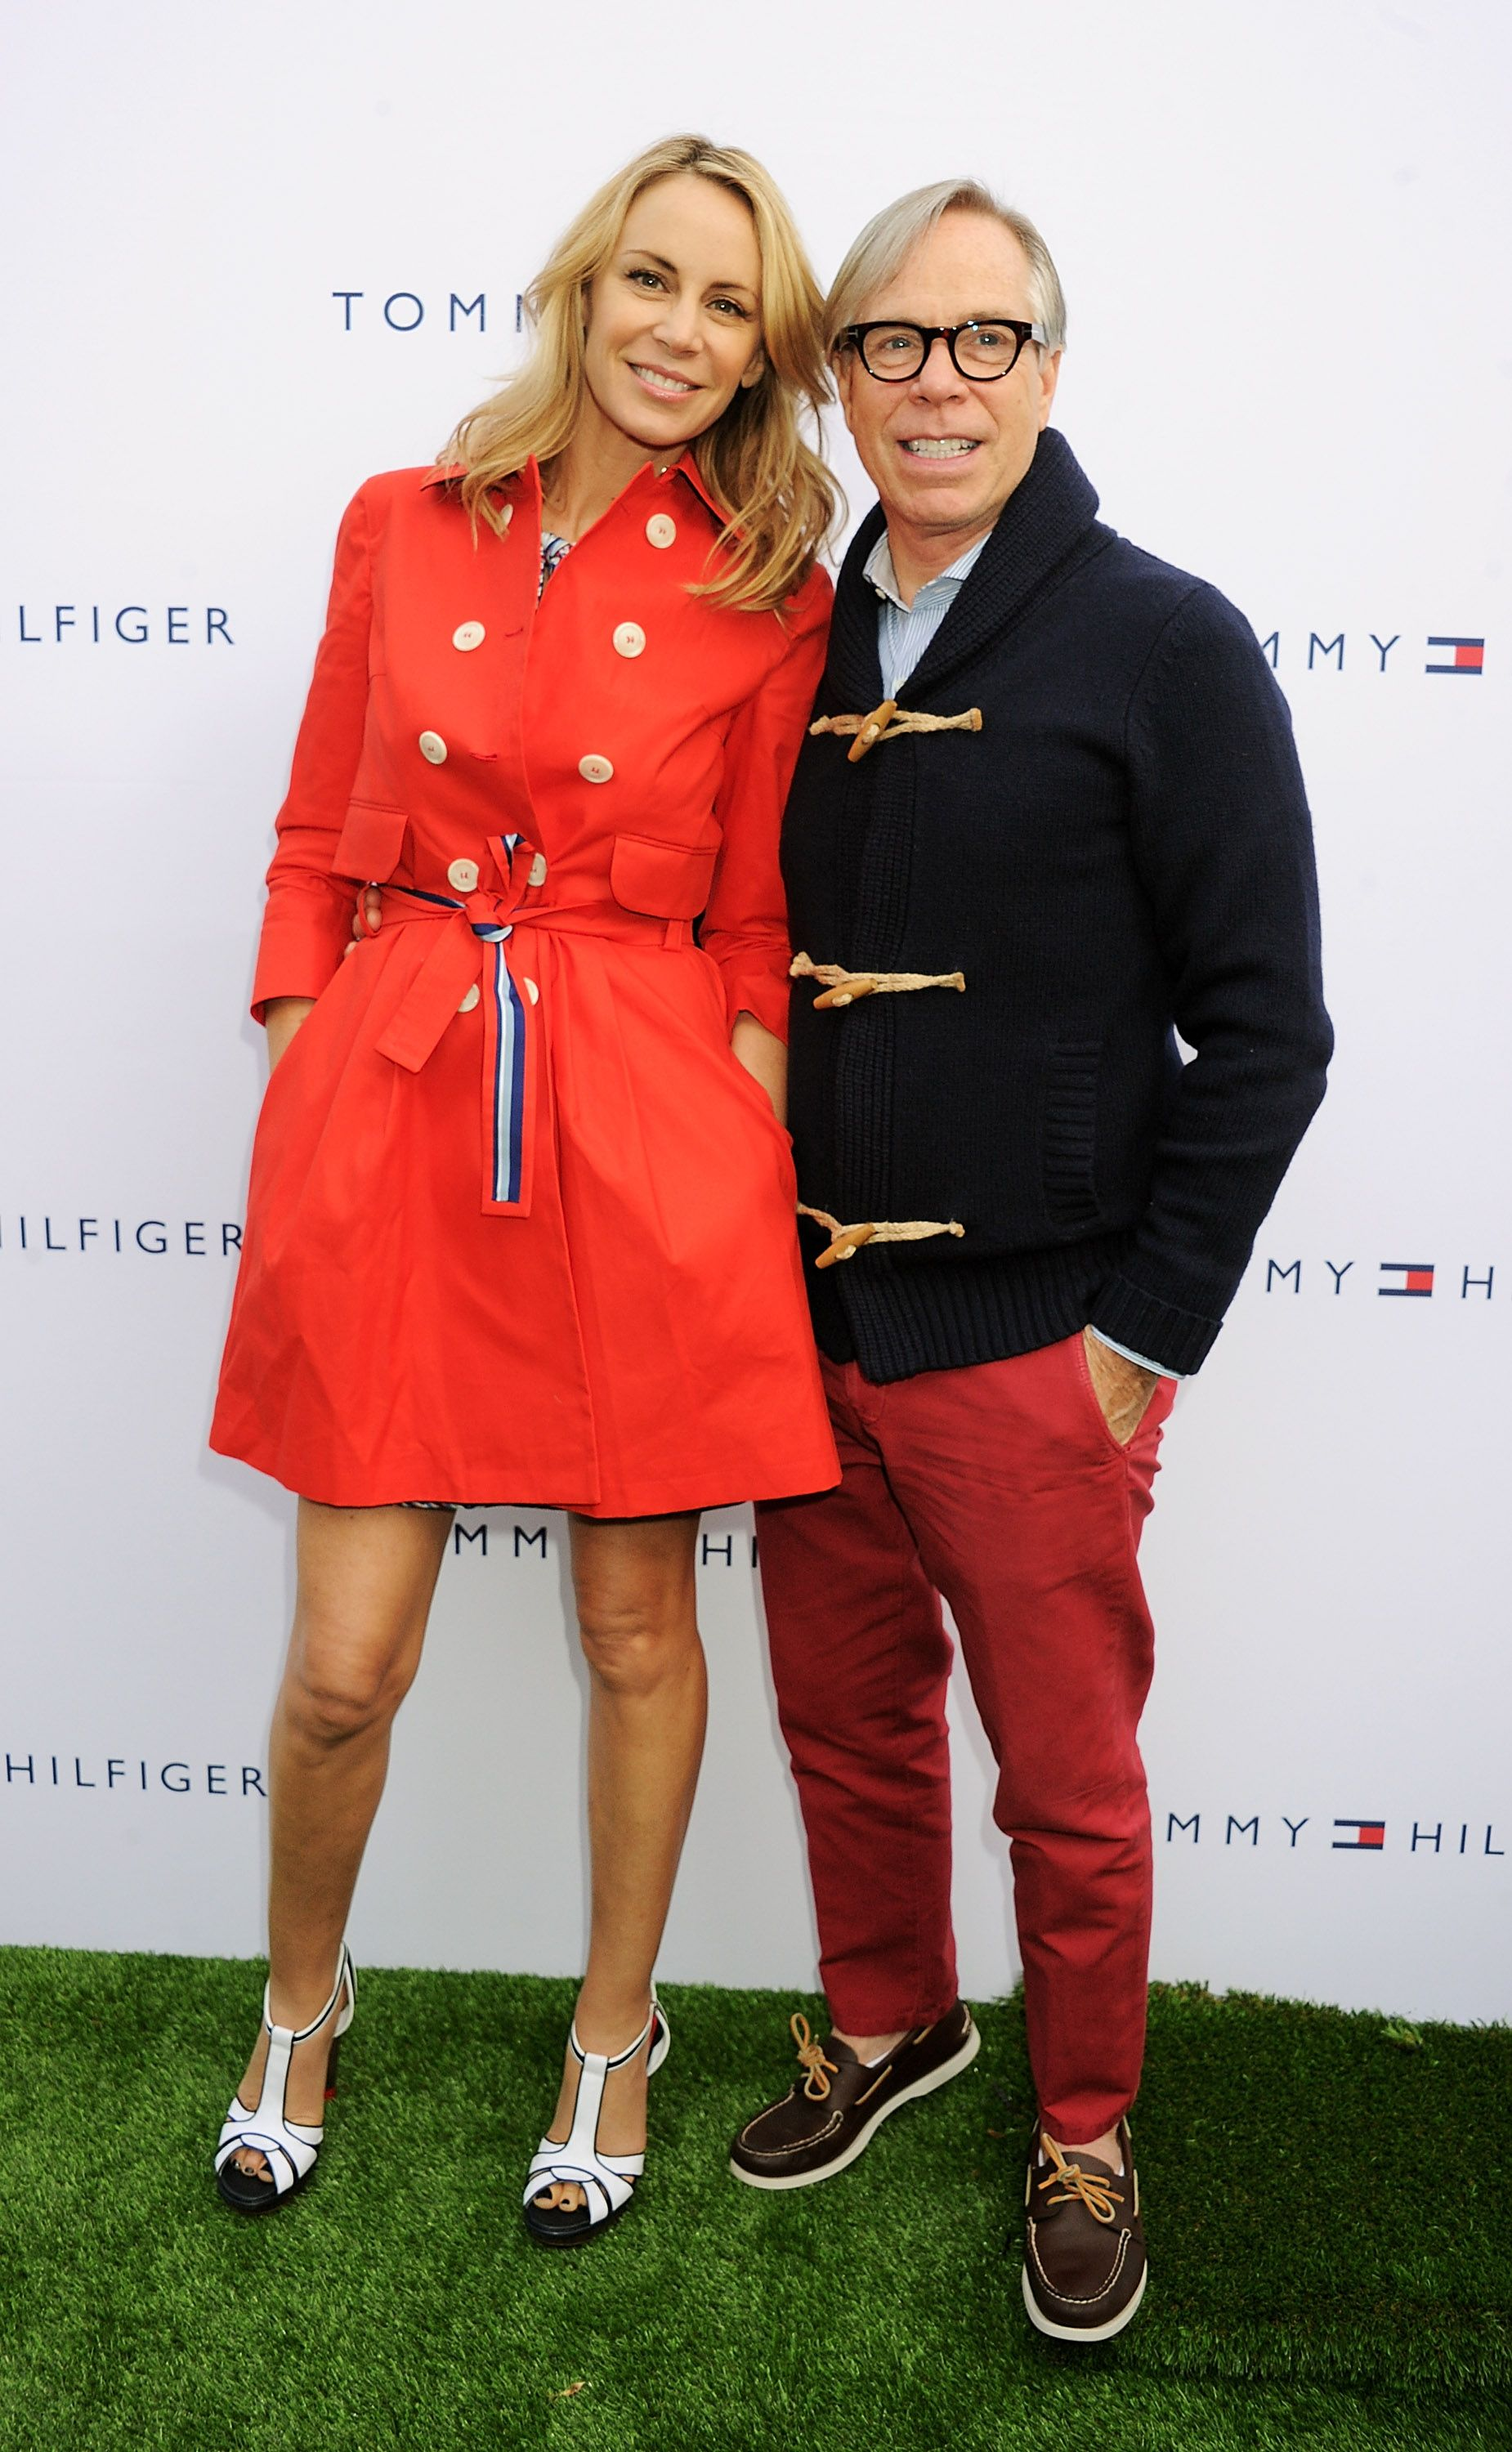 Buy Furniture from Tommy Hilfiger and Dee Ocleppo's Greenwich Home - Hilfiger Sotheby's Home Sale